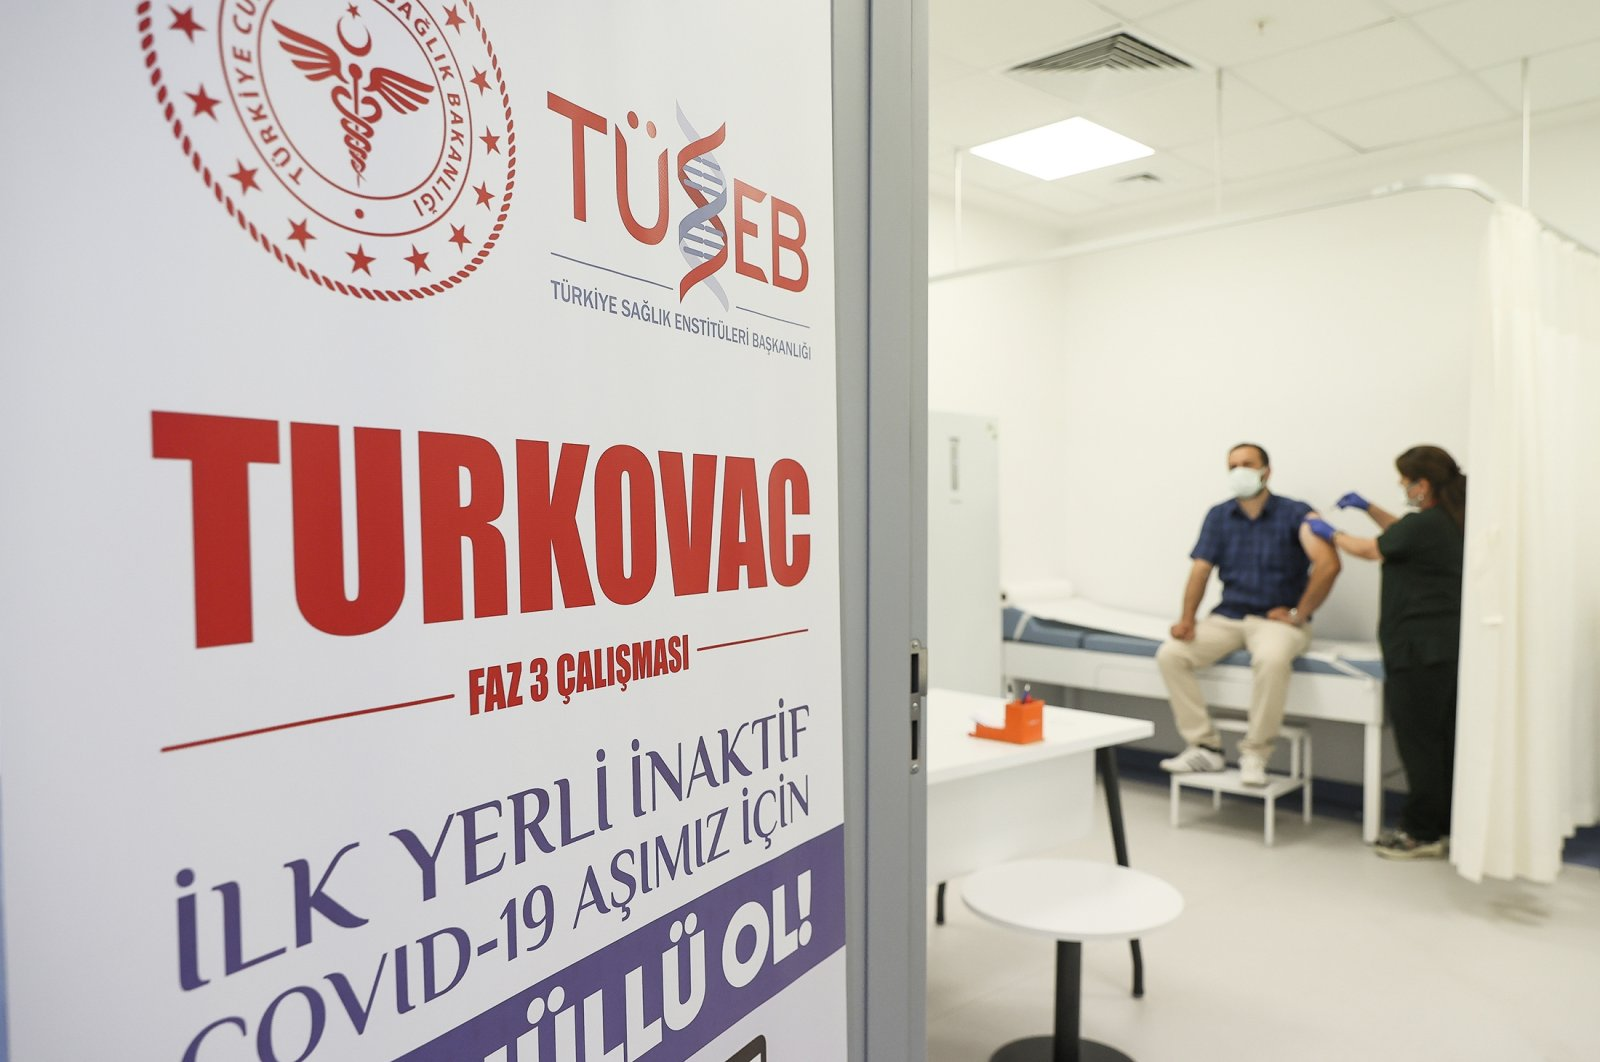 A volunteer is vaccinated with Turkovac at a hospital, in the capital Ankara, Turkey, July 9, 2021. (AA PHOTO)